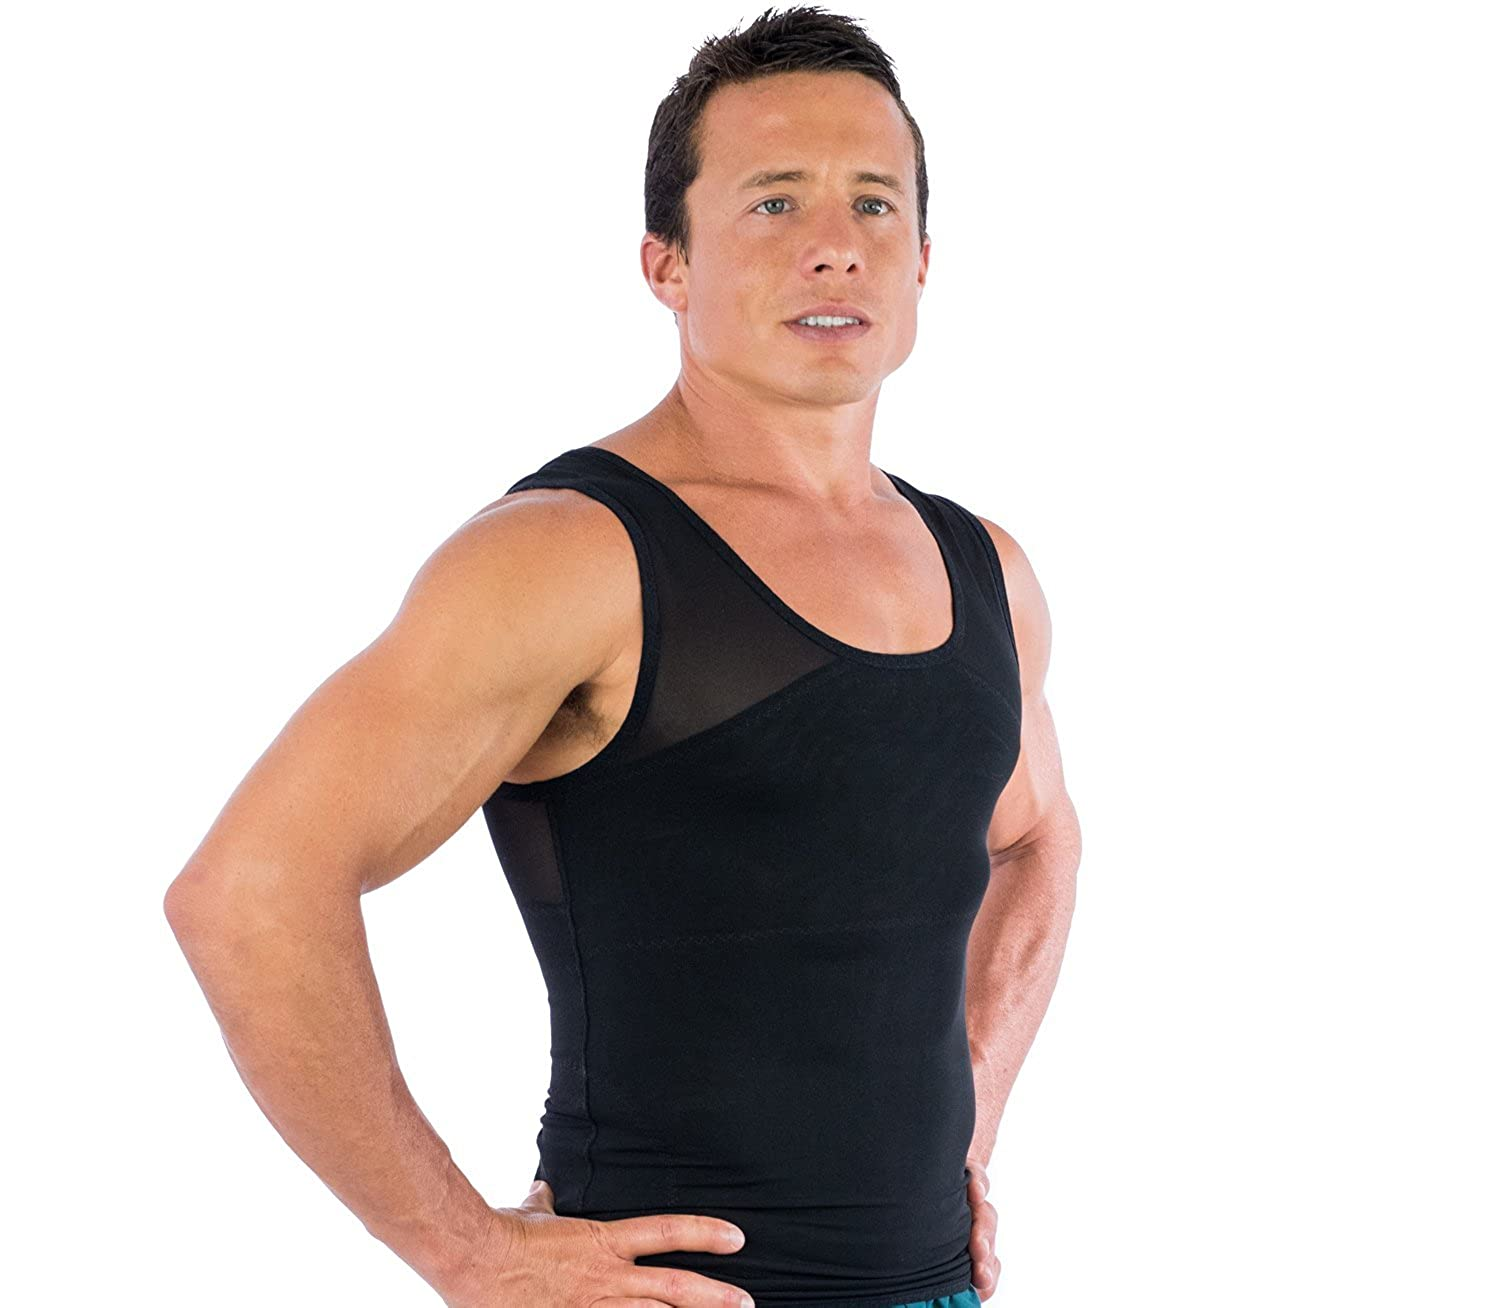 e499f3574275b Esteem Apparel Original Men s Chest Compression Shirt to Hide Gynecomastia  Moobs at Amazon Men s Clothing store